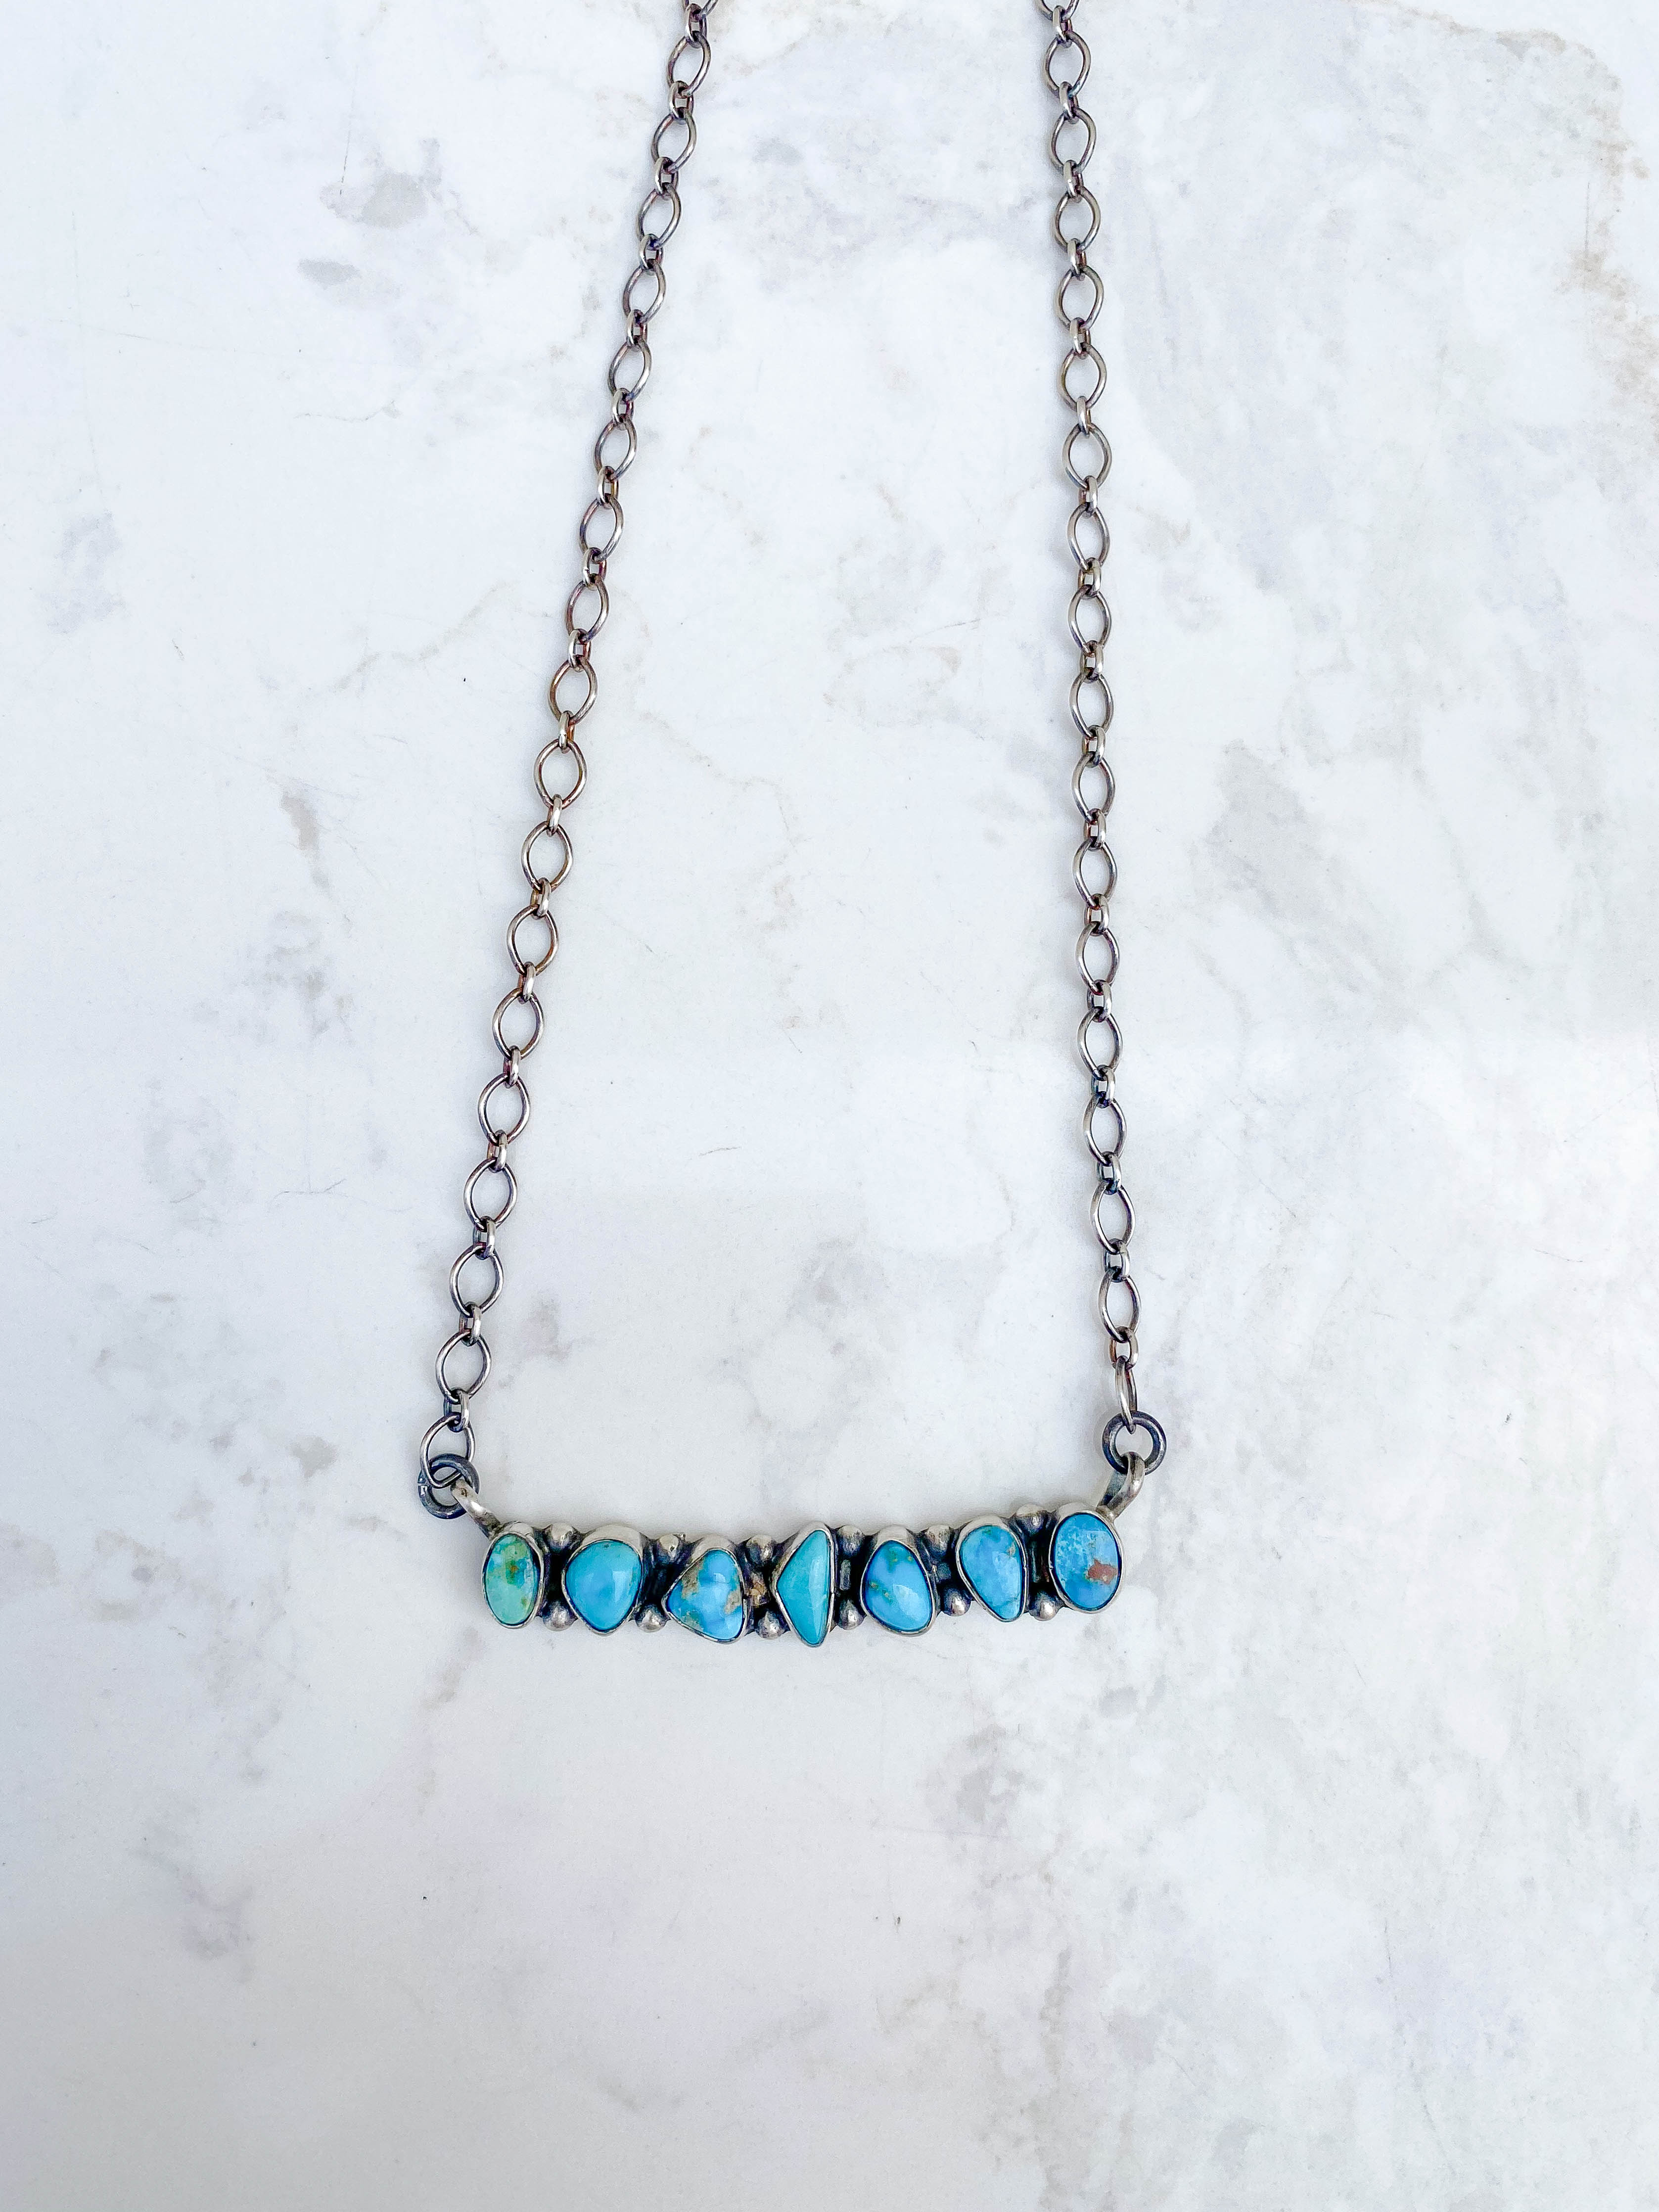 7 Stone Turquoise Bar Necklaces